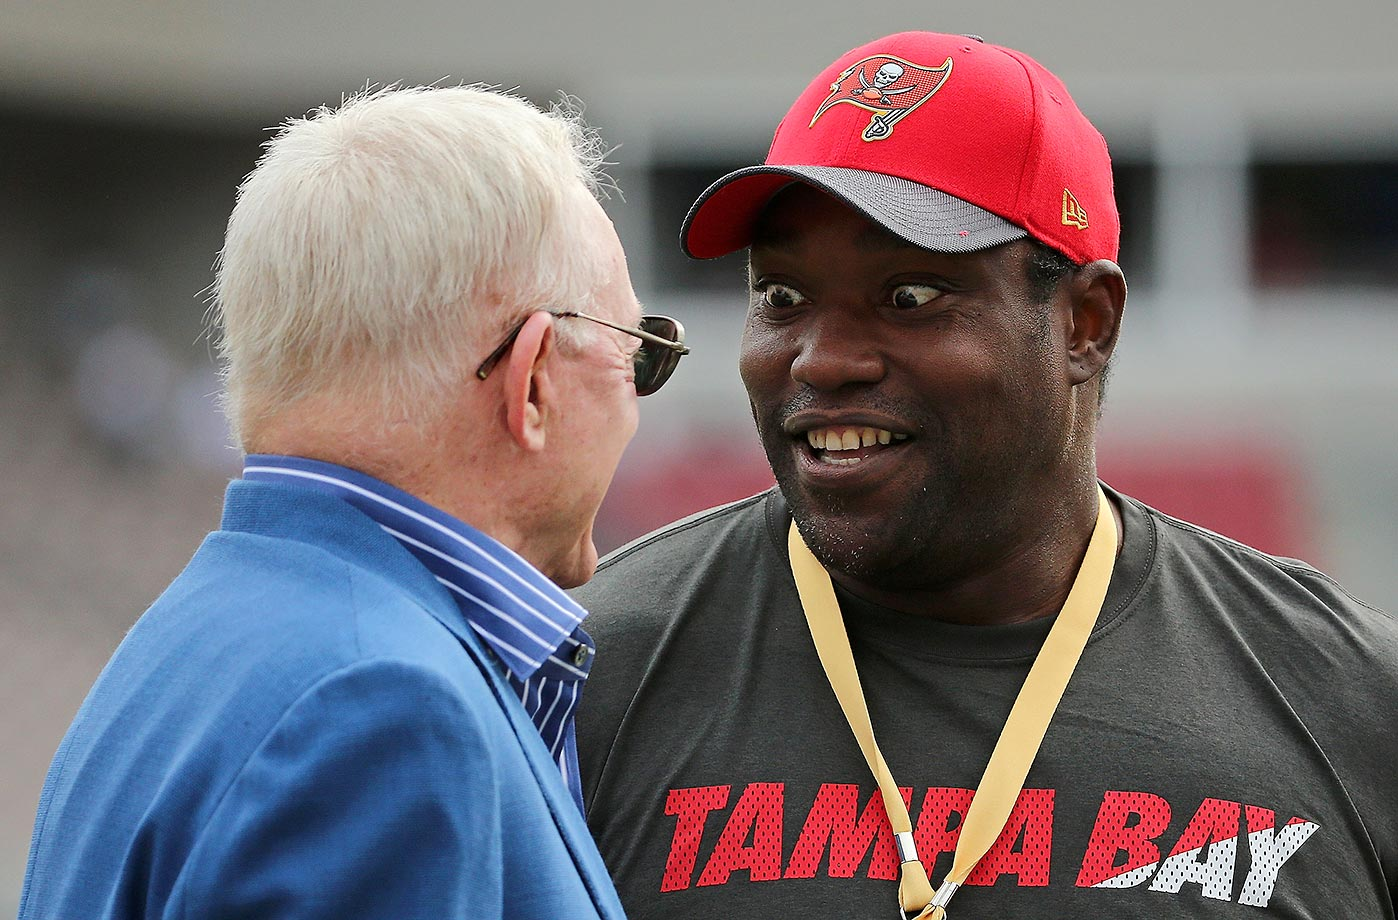 Dallas Cowboys owner Jerry Jones talks with former Tampa Bay Buccaneer Warren Sapp.